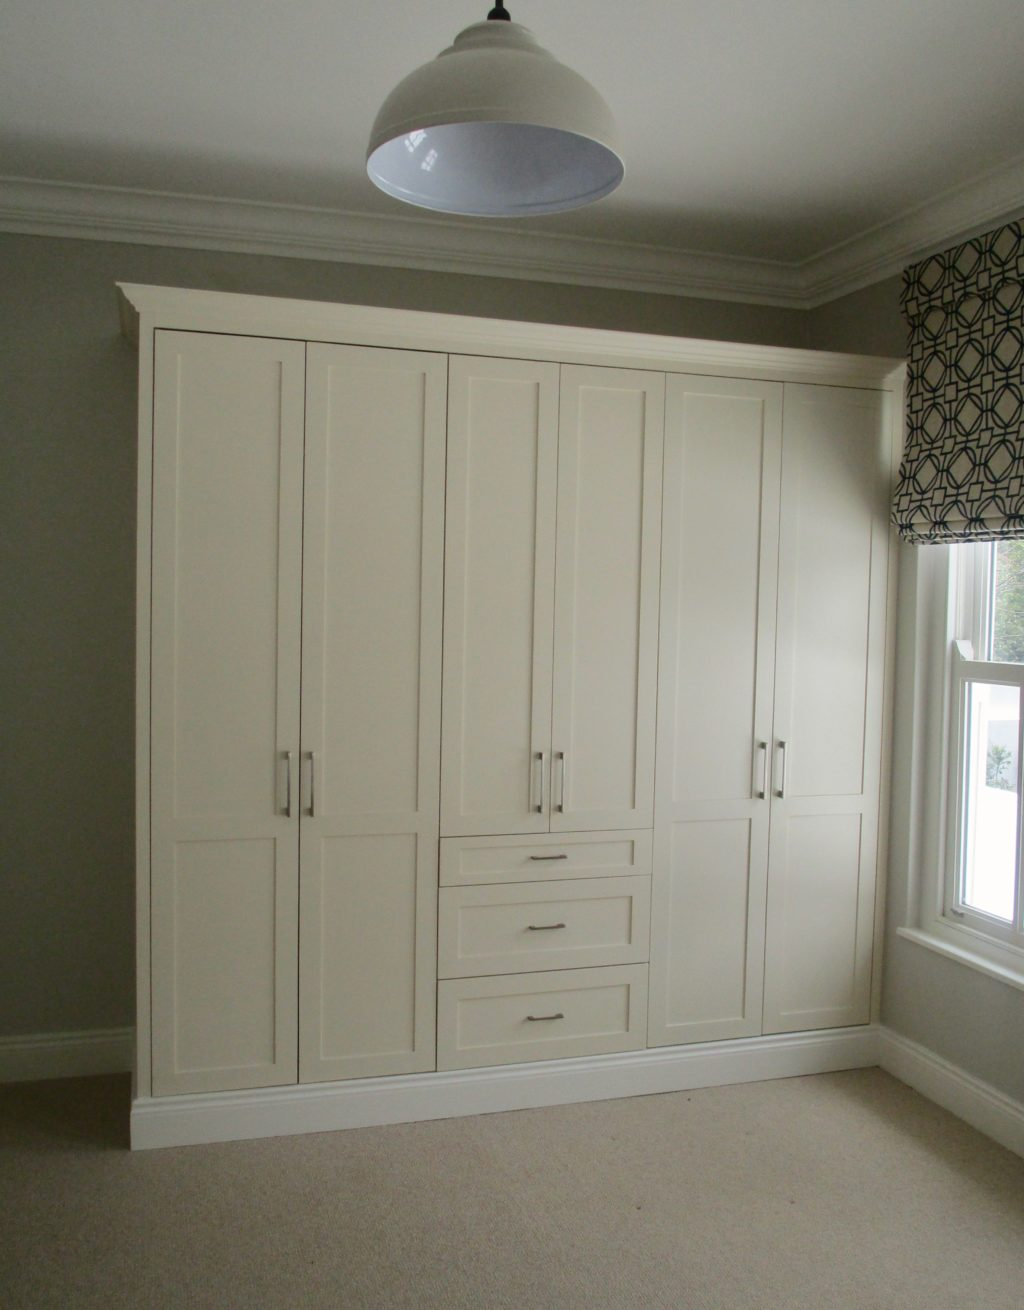 Bedroom cupboards by Woodhouse